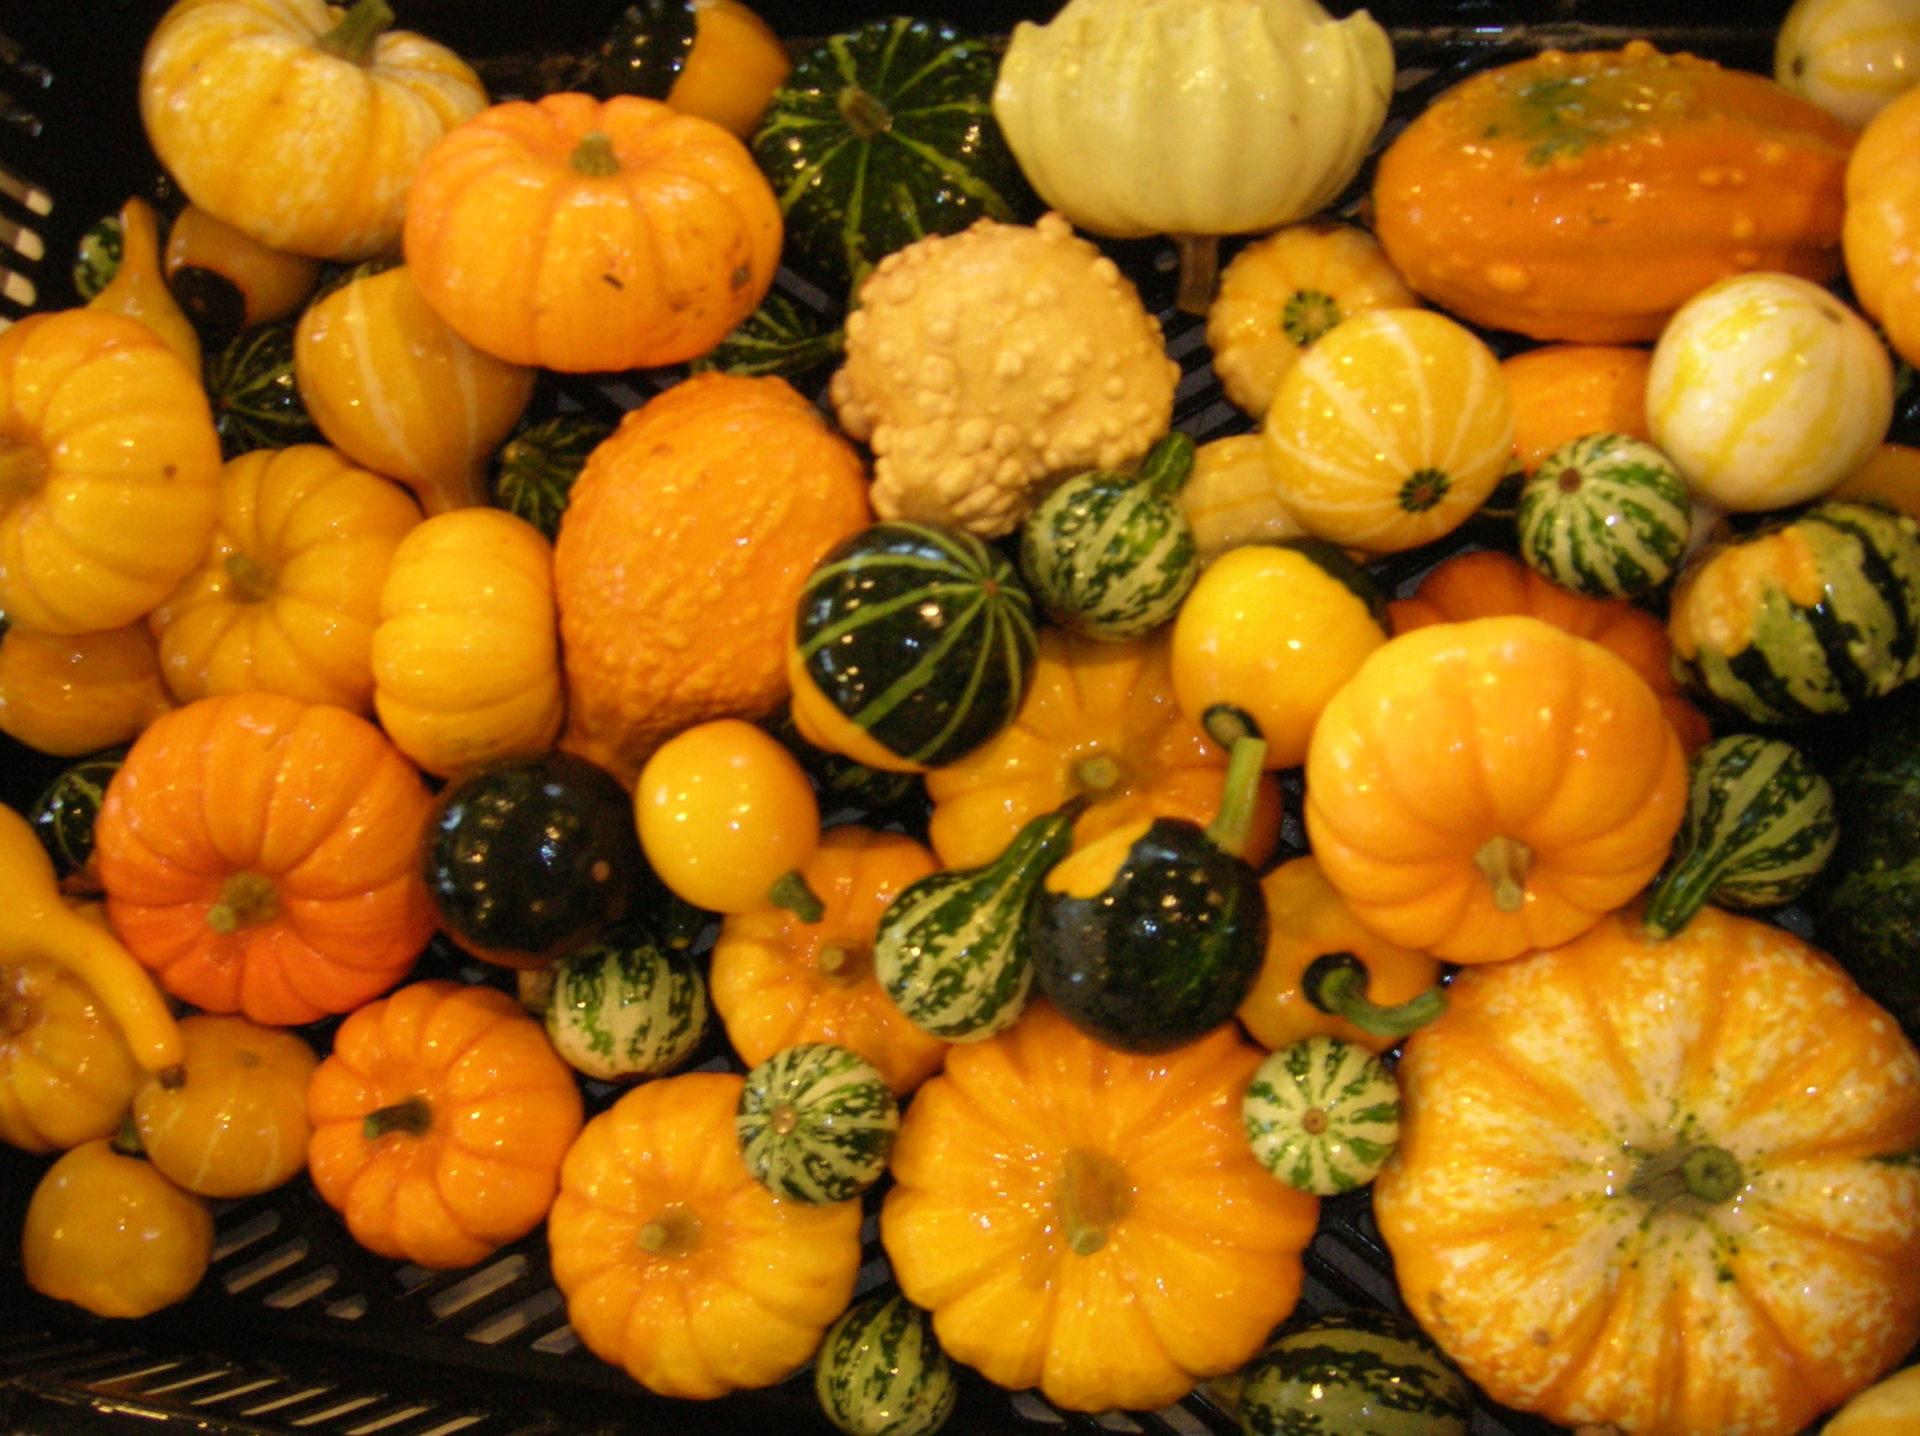 Gourds and Small Pumpkins